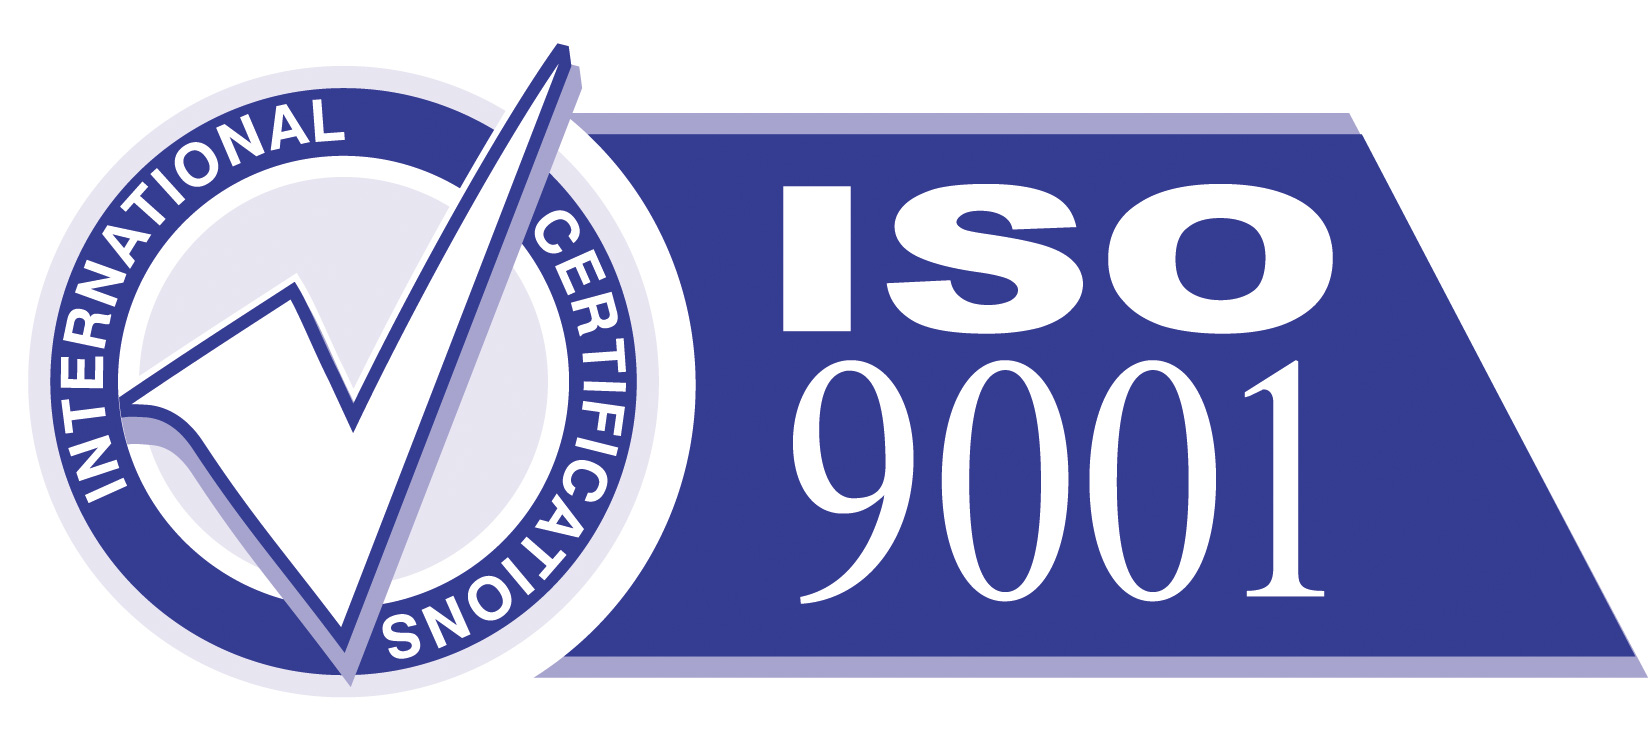 Midwest Copier Exchange Achieves ISO 9001 Certification